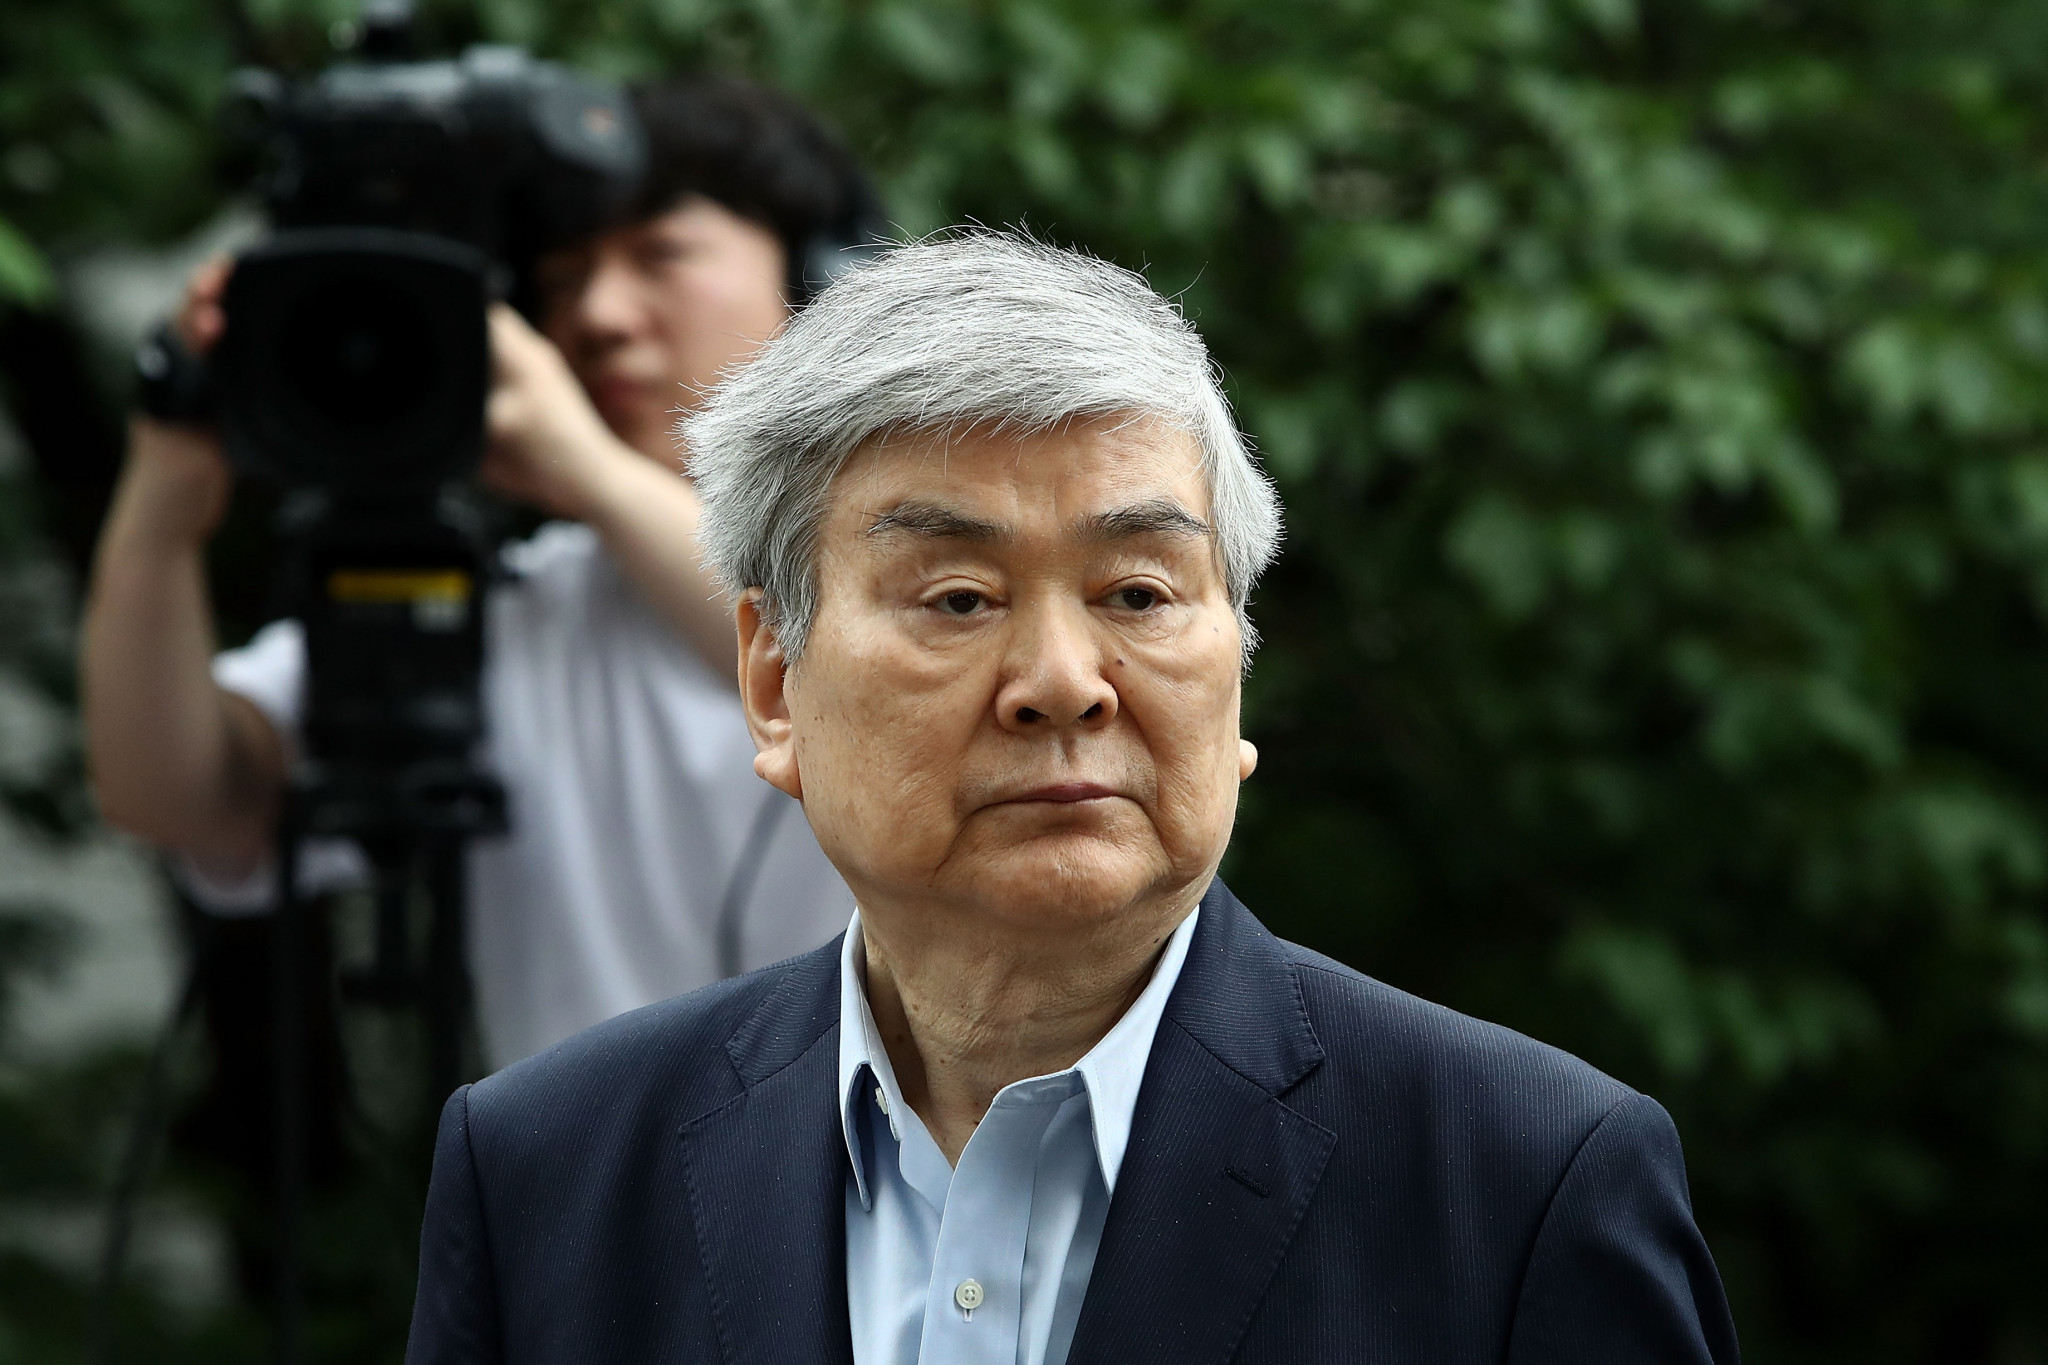 Former Pyeongchang 2018 chairman charged with embezzlement and breach of trust